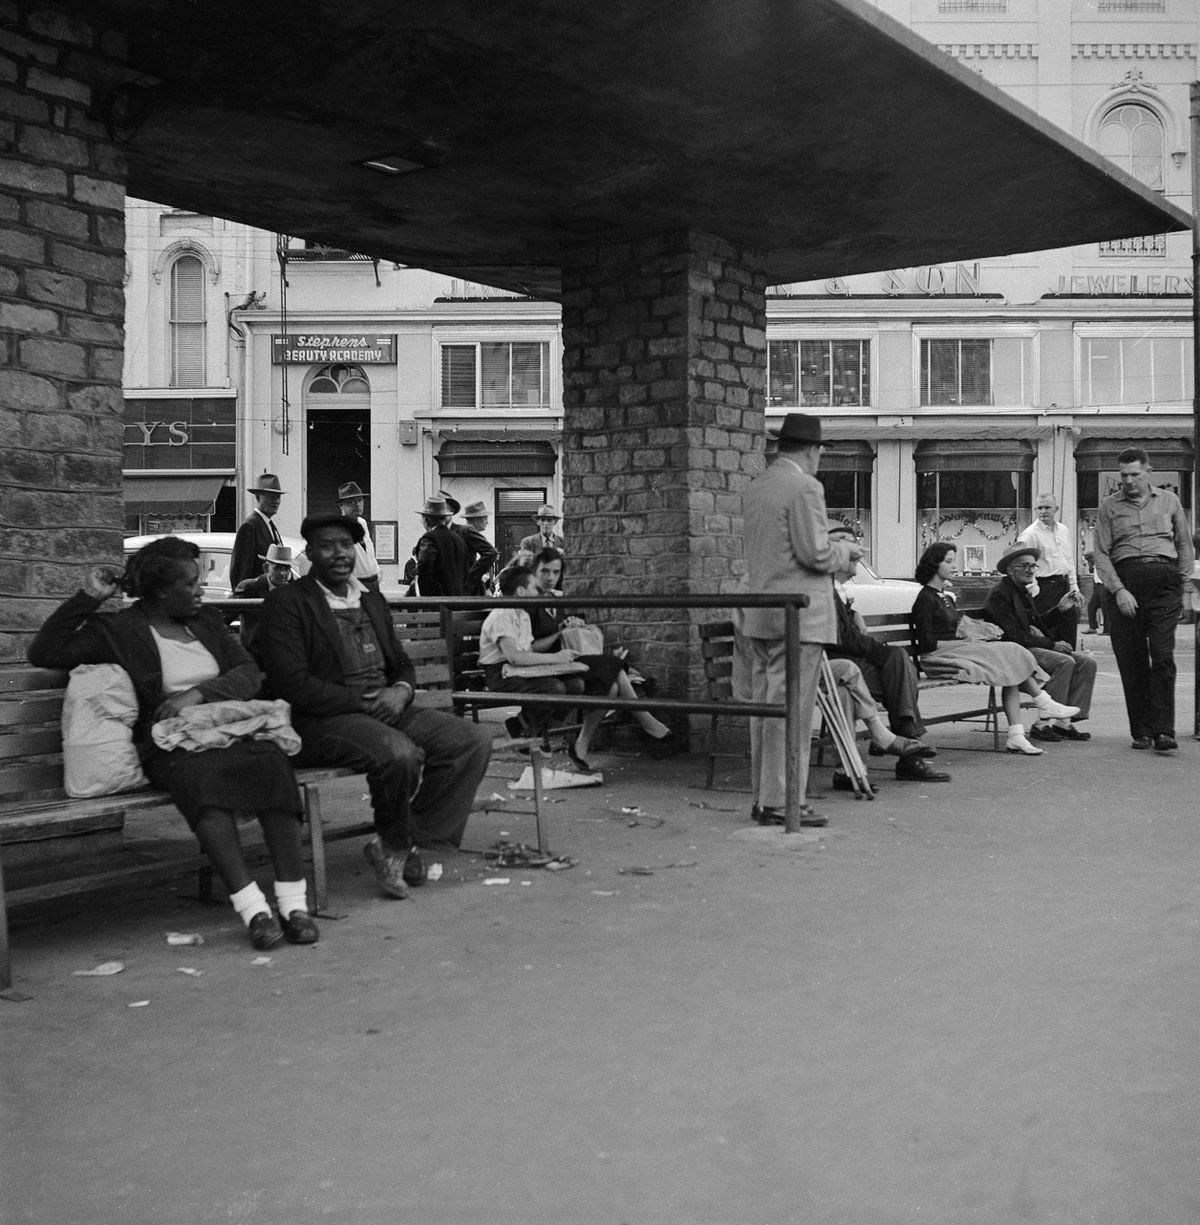 A Black man and woman talk on a bench that's separate from other white people by a dividing barrier.